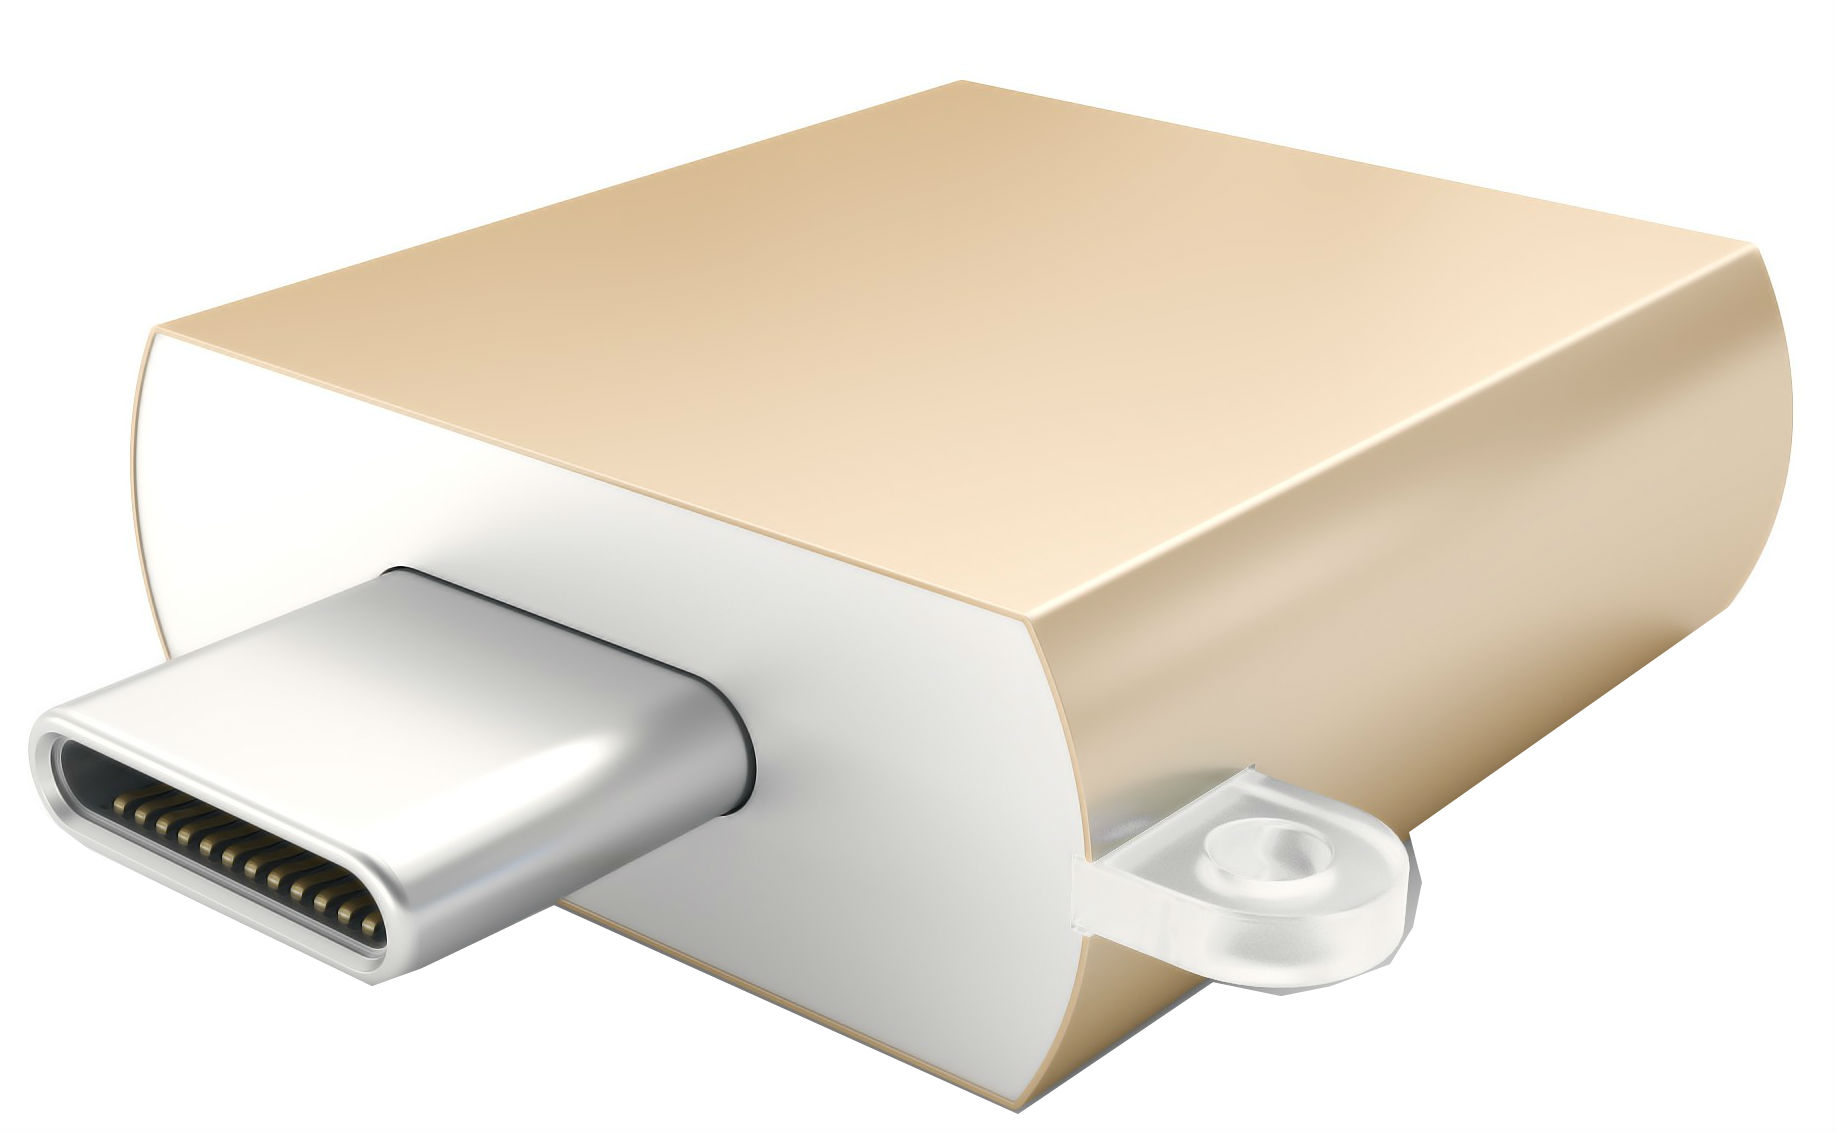 Satechi Type-C to Type-A USB 3.0 B015YRRY4S